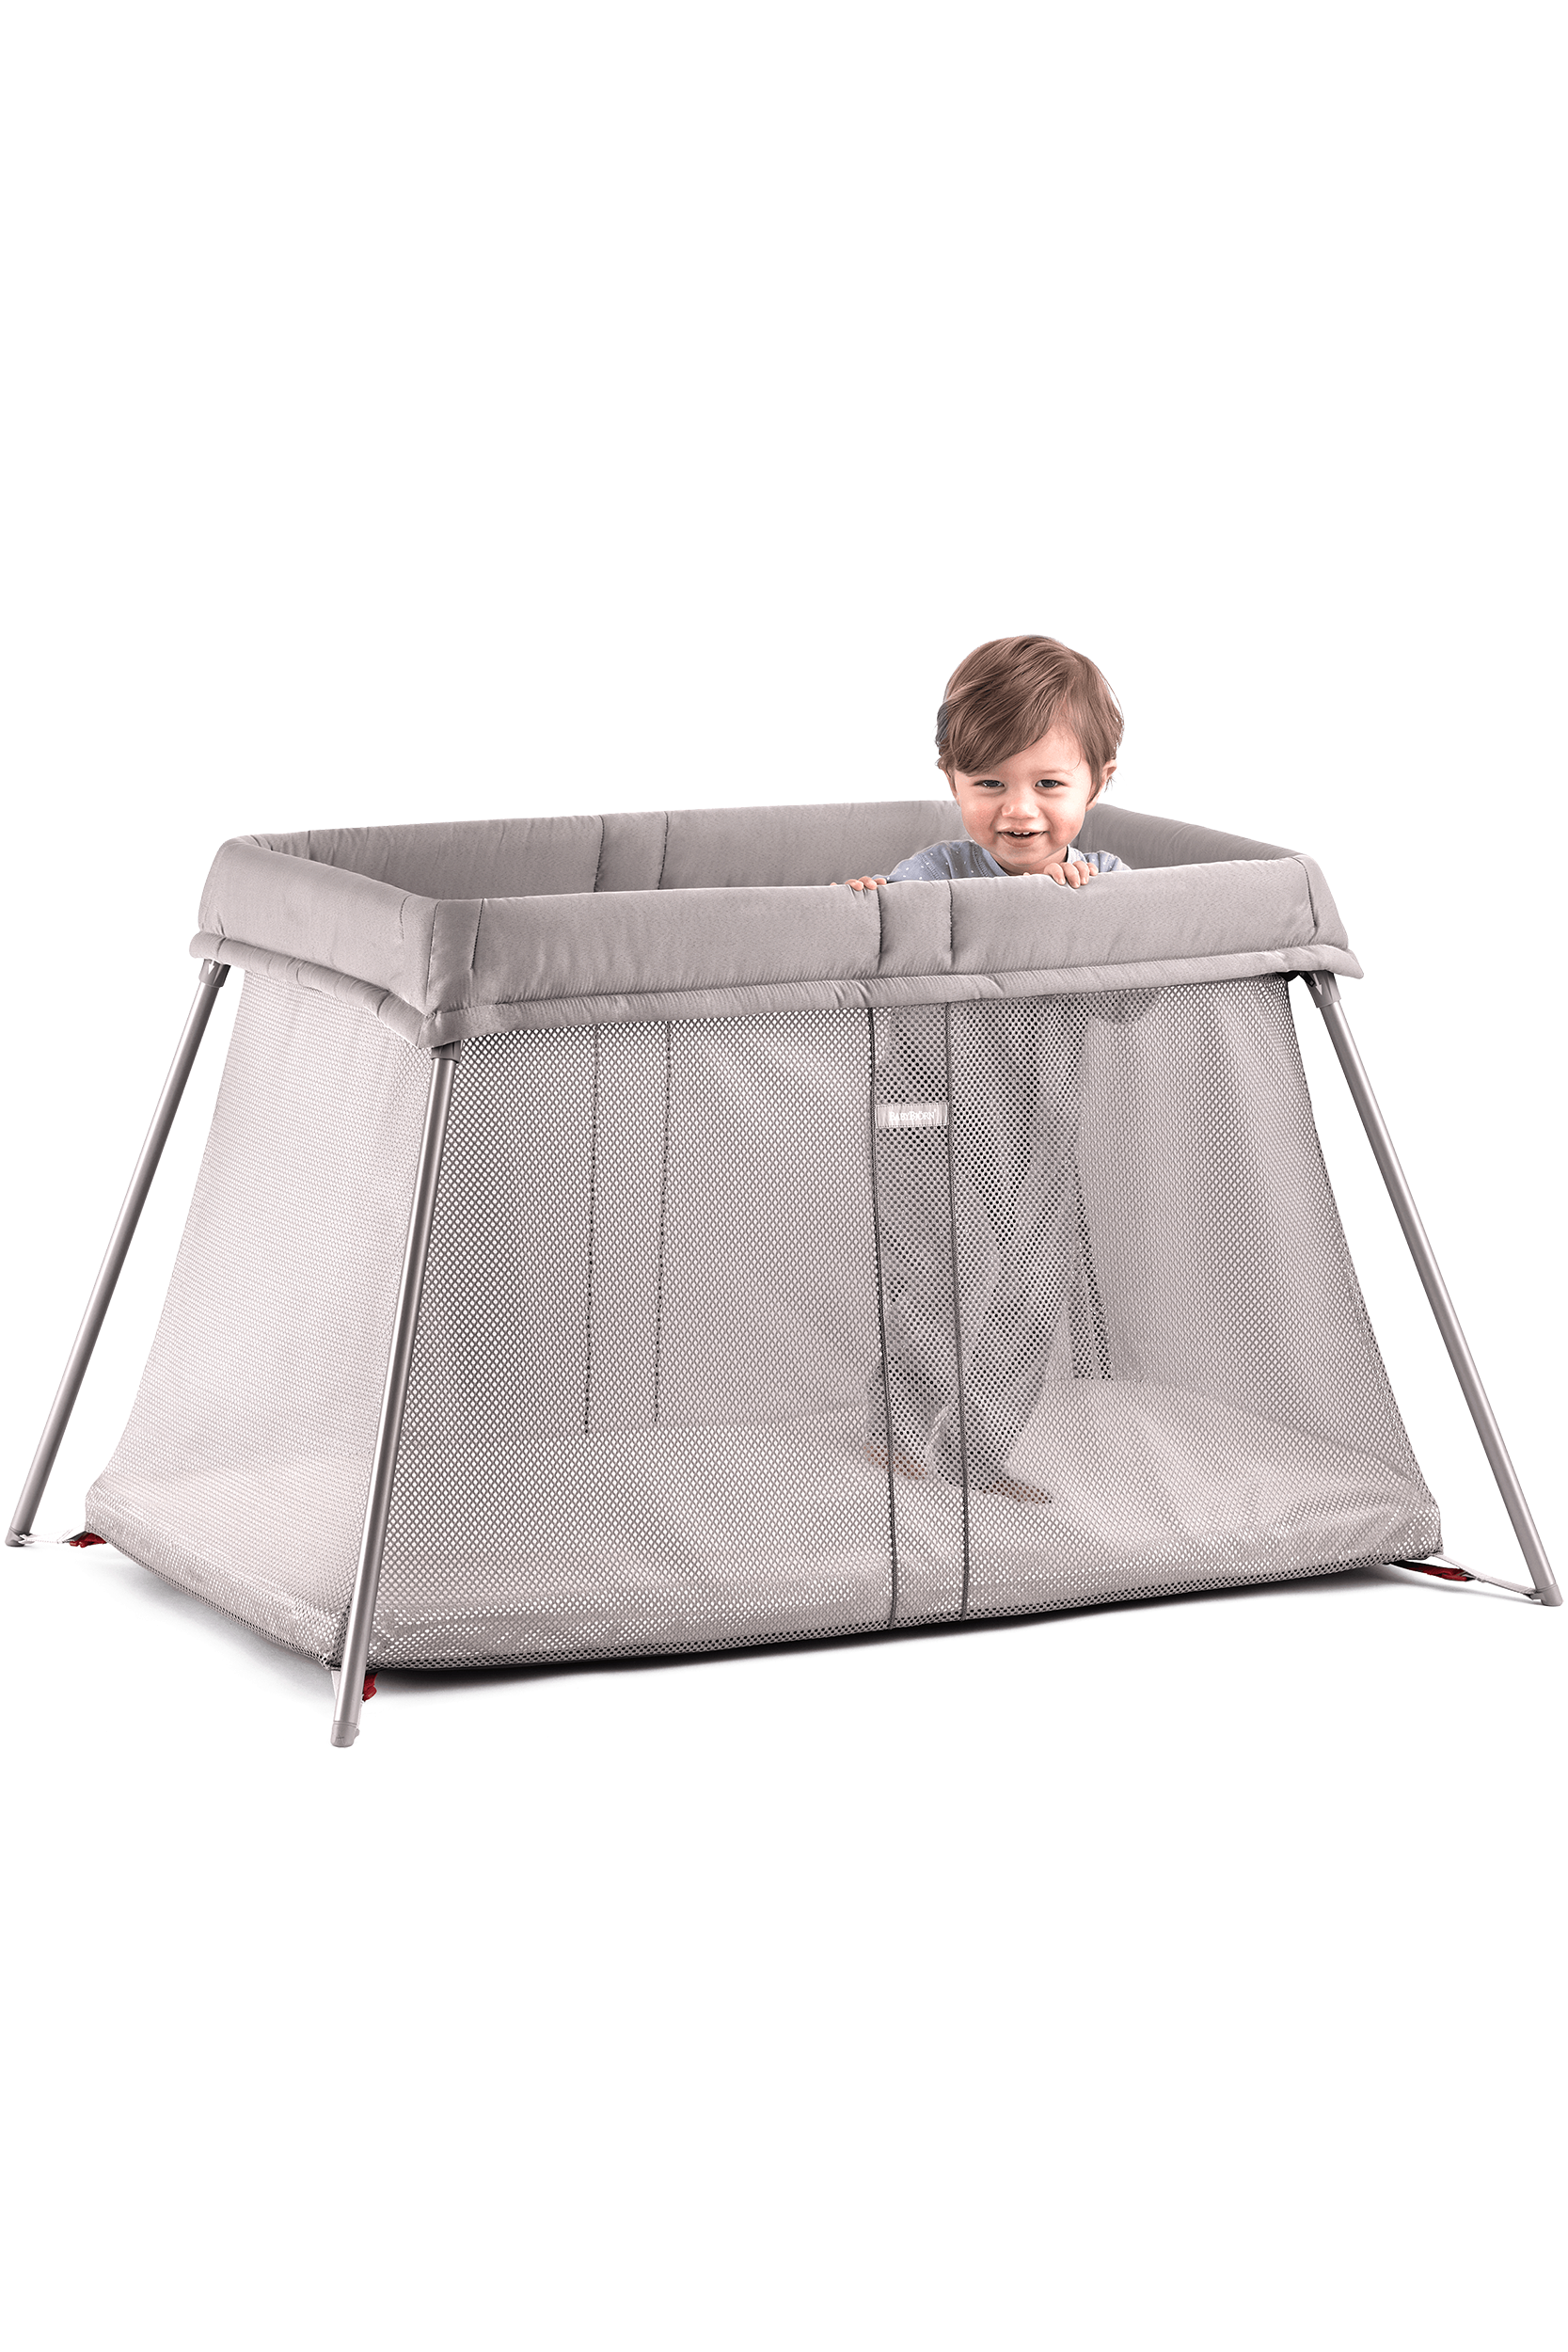 Svært Small travel cot for baby – easy to use | BABYBJÖRN BV-57